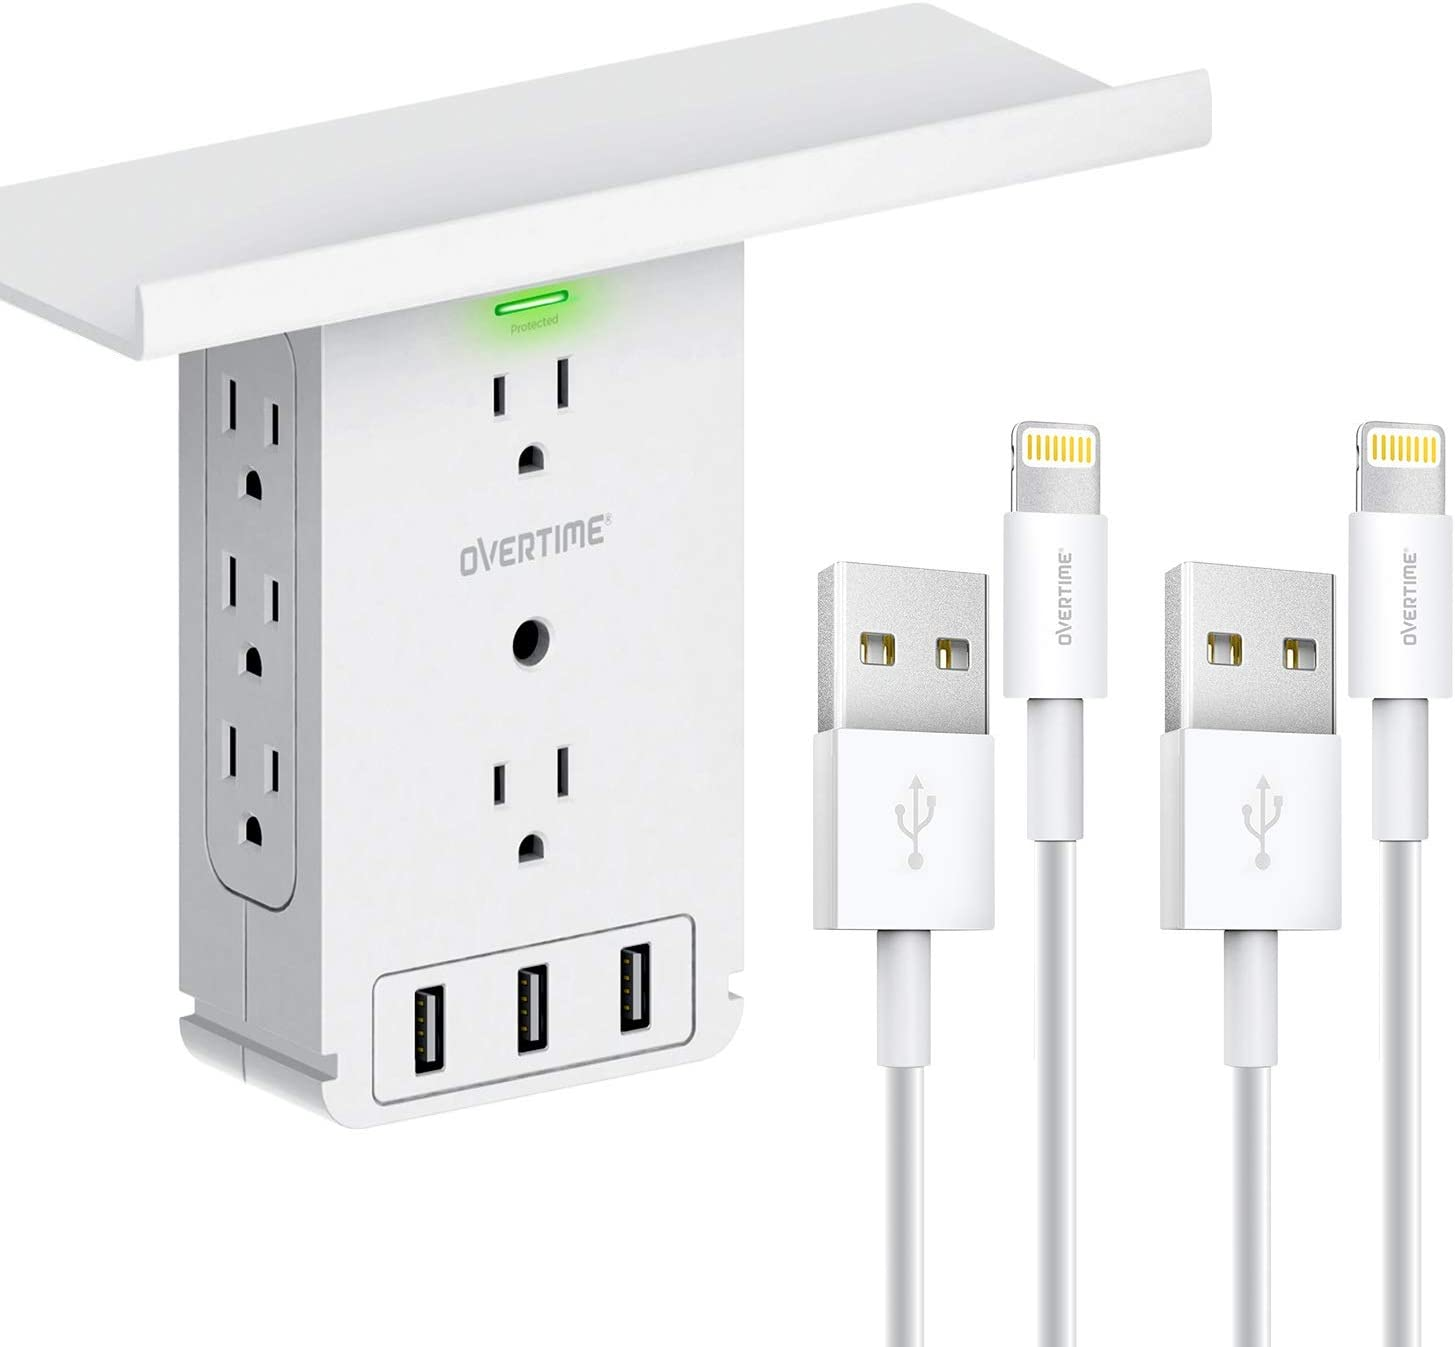 Socket Shelf Wall Outlet & [2-pack] 6ft Lightning Cable: Power Charger & Surge Protector, 8 AC Outlets, 3 USB Ports, Electrical Outlet Extender, Shelf Holder, MFi Certified Lightning Cable - White